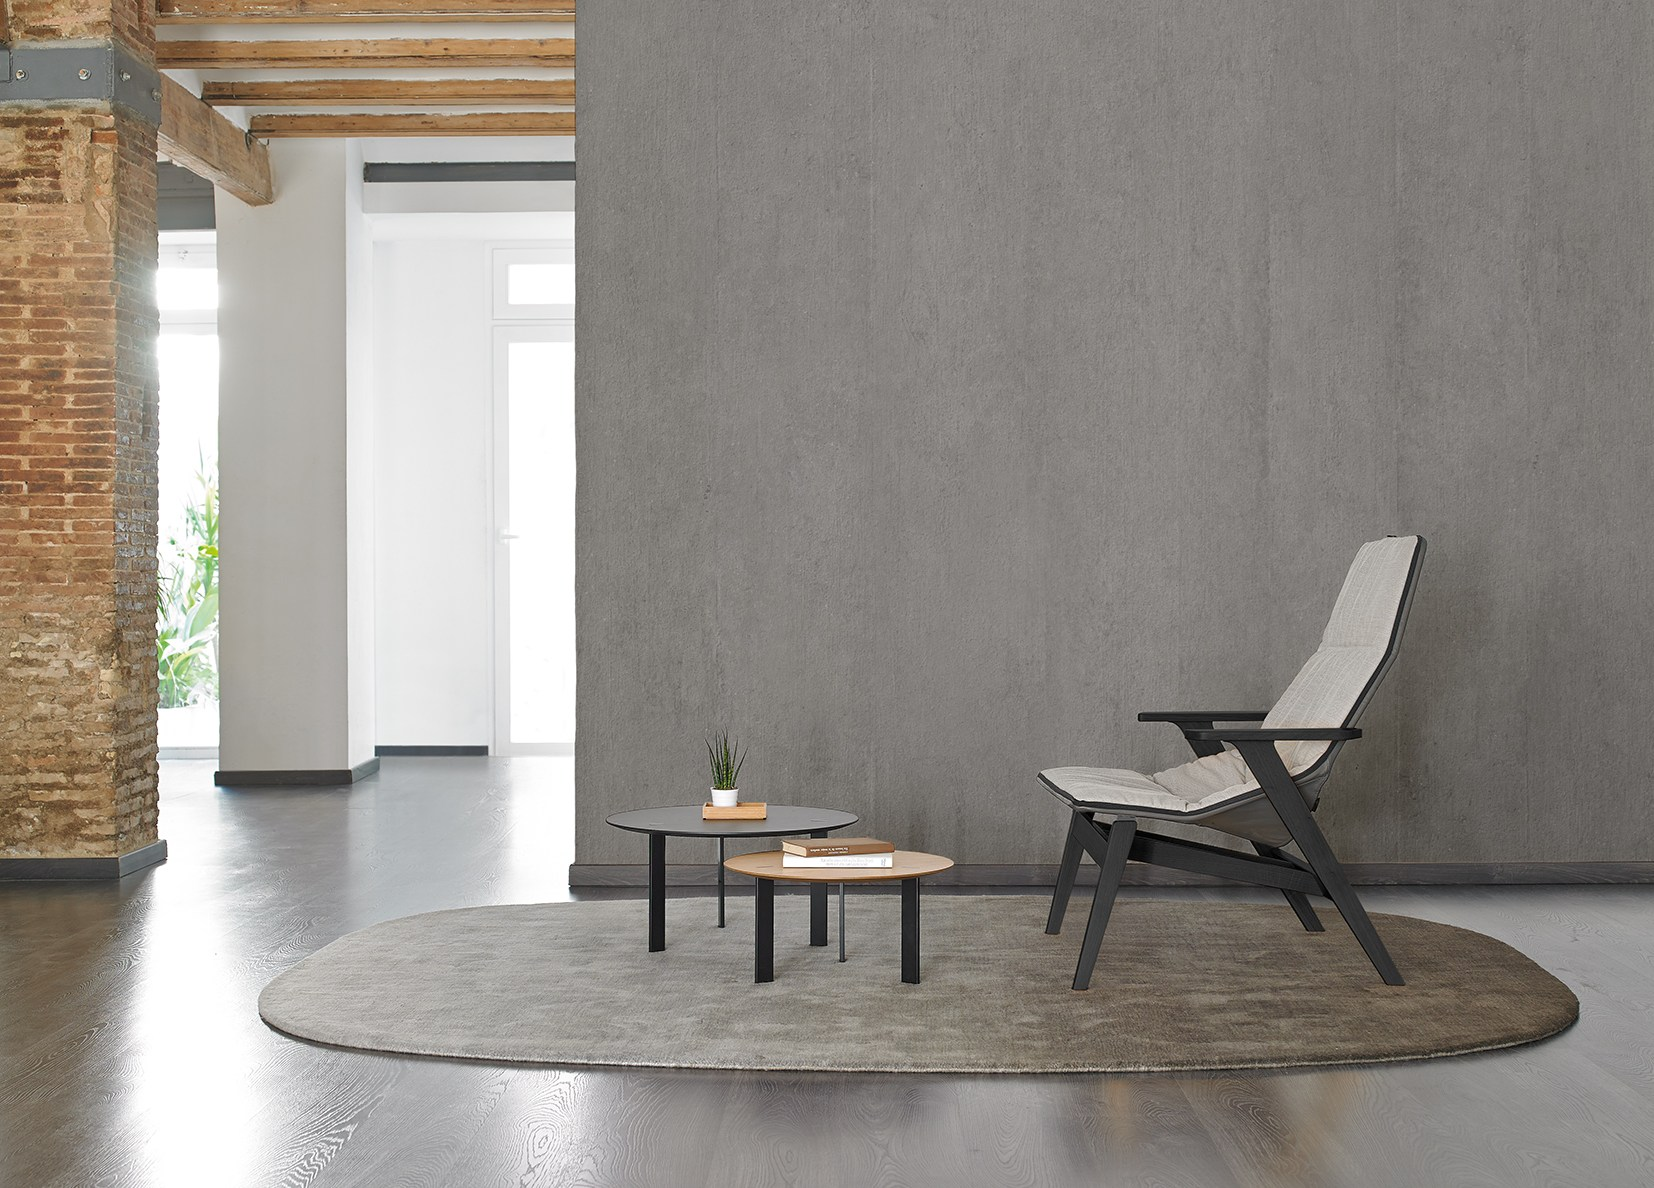 ACE WOOD Chair by Jean-Marie Massaud for Viccarbe